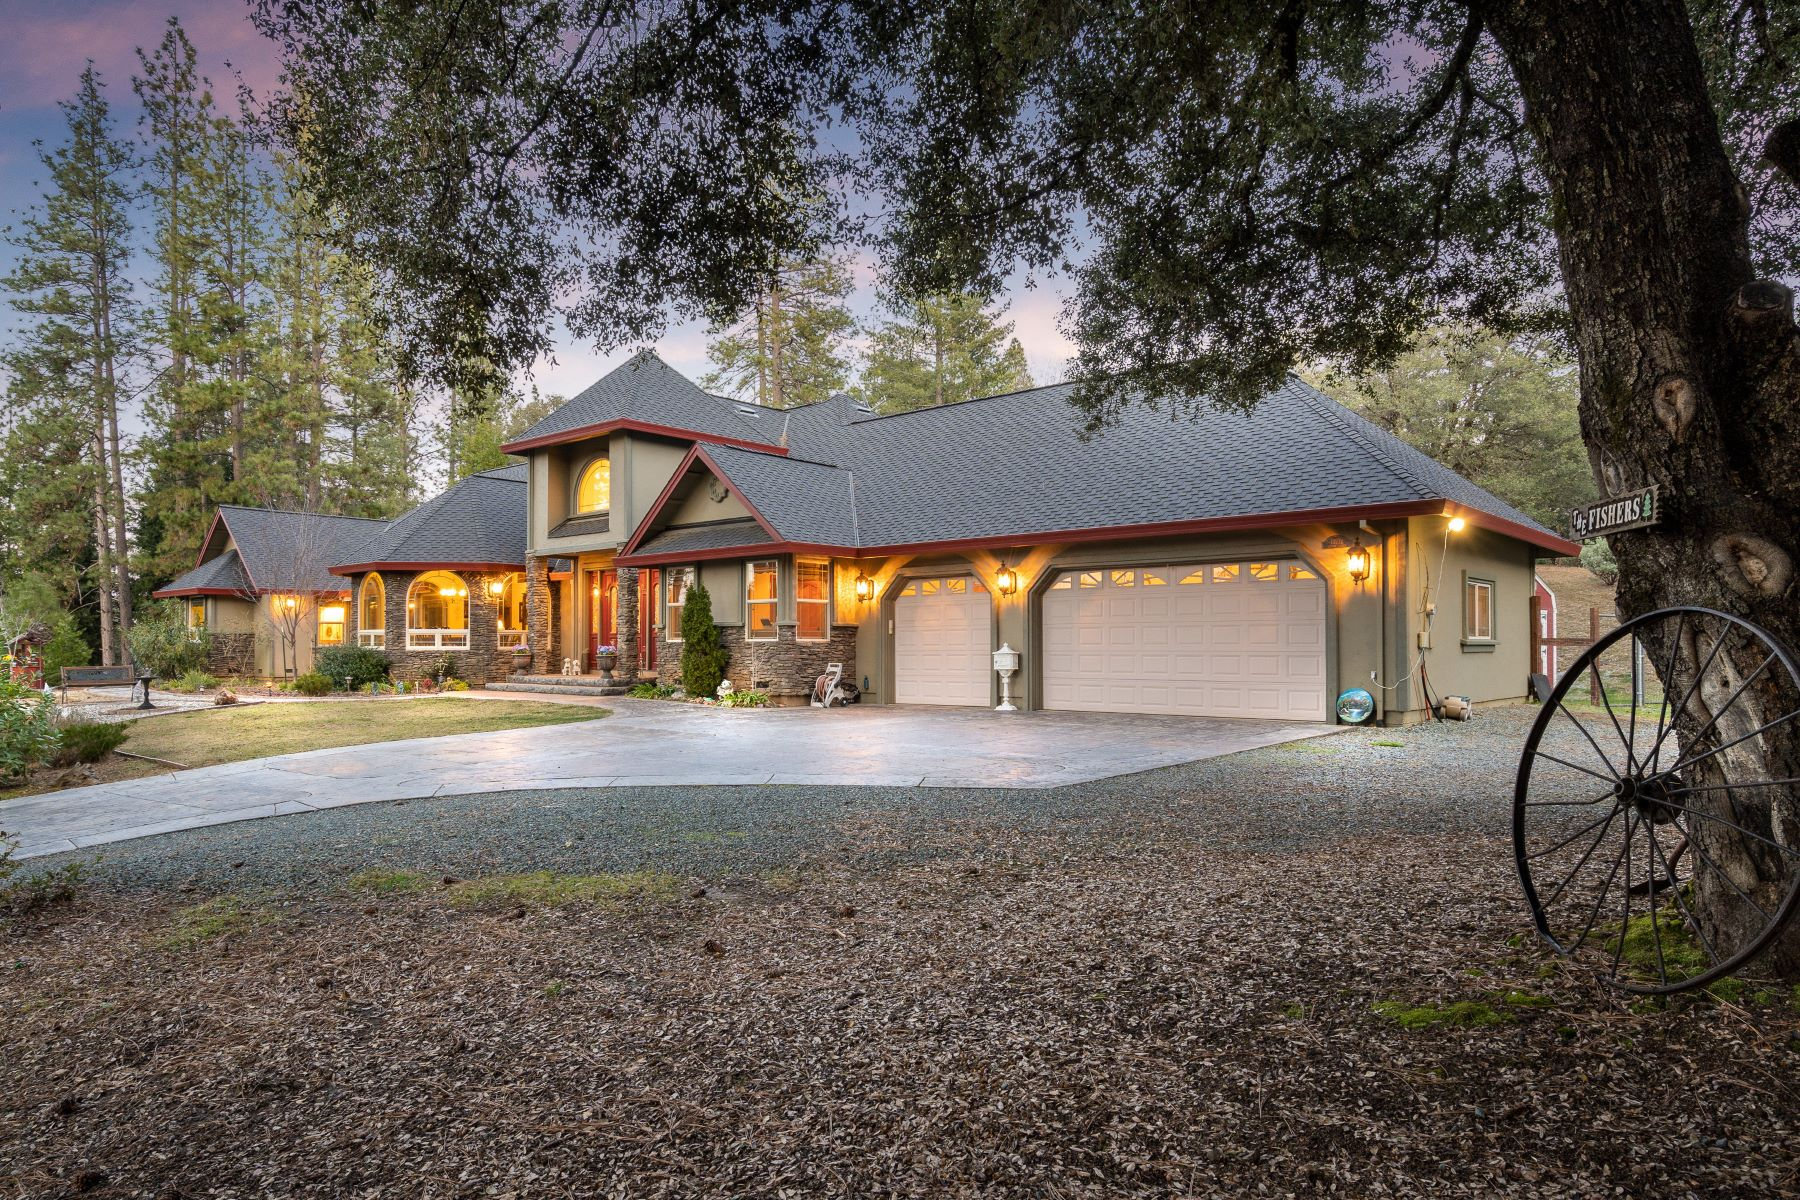 Single Family Homes for Sale at 13932 Logans Alley, Pine Grove, CA 95665 13932 Logans Alley Pine Grove, California 95665 United States